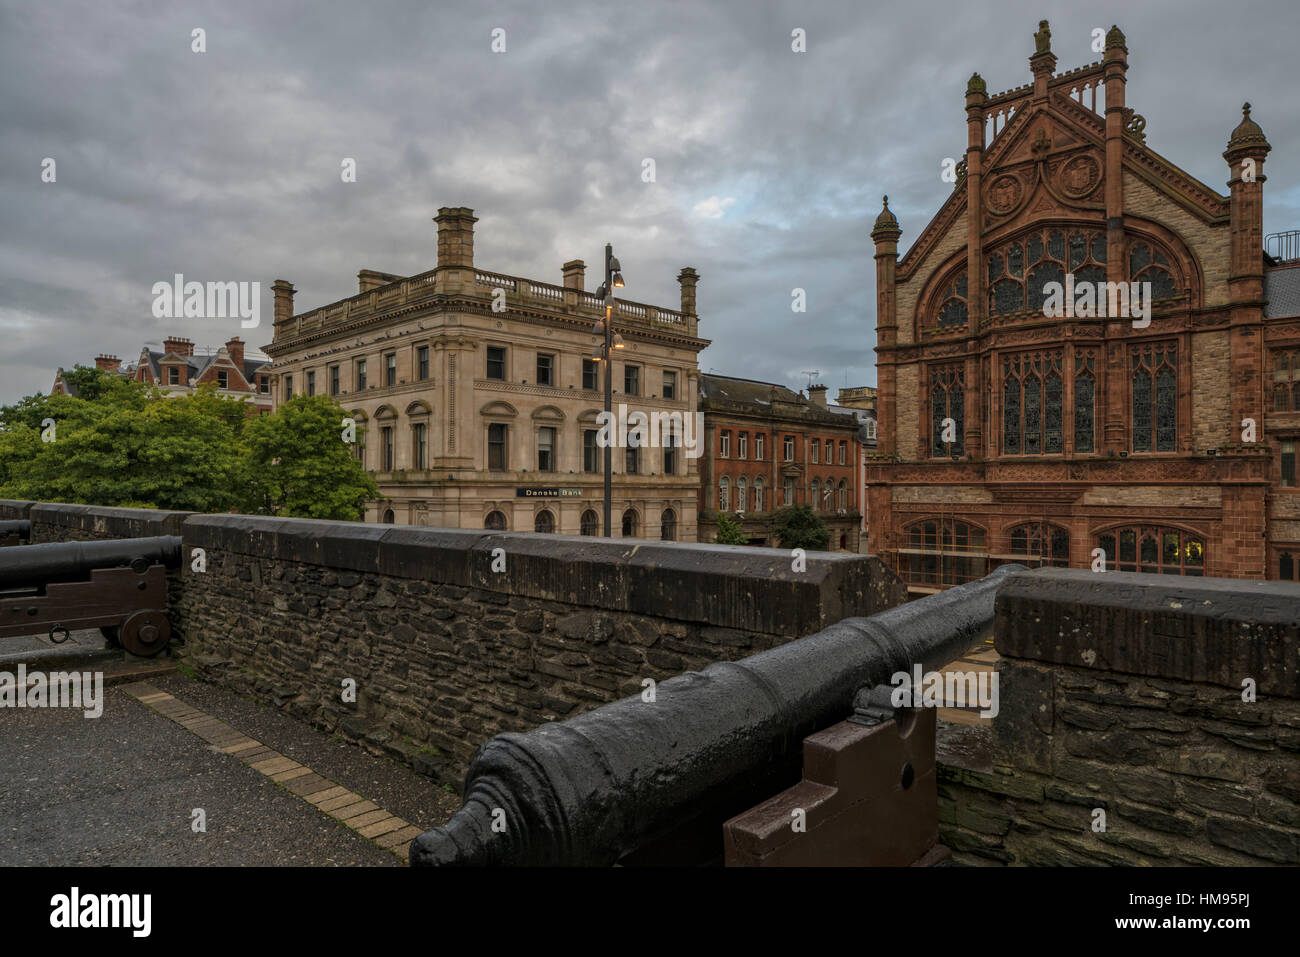 Londonderry (Derry), County Down, Ulster, Northern Ireland, United Kingdom - Stock Image